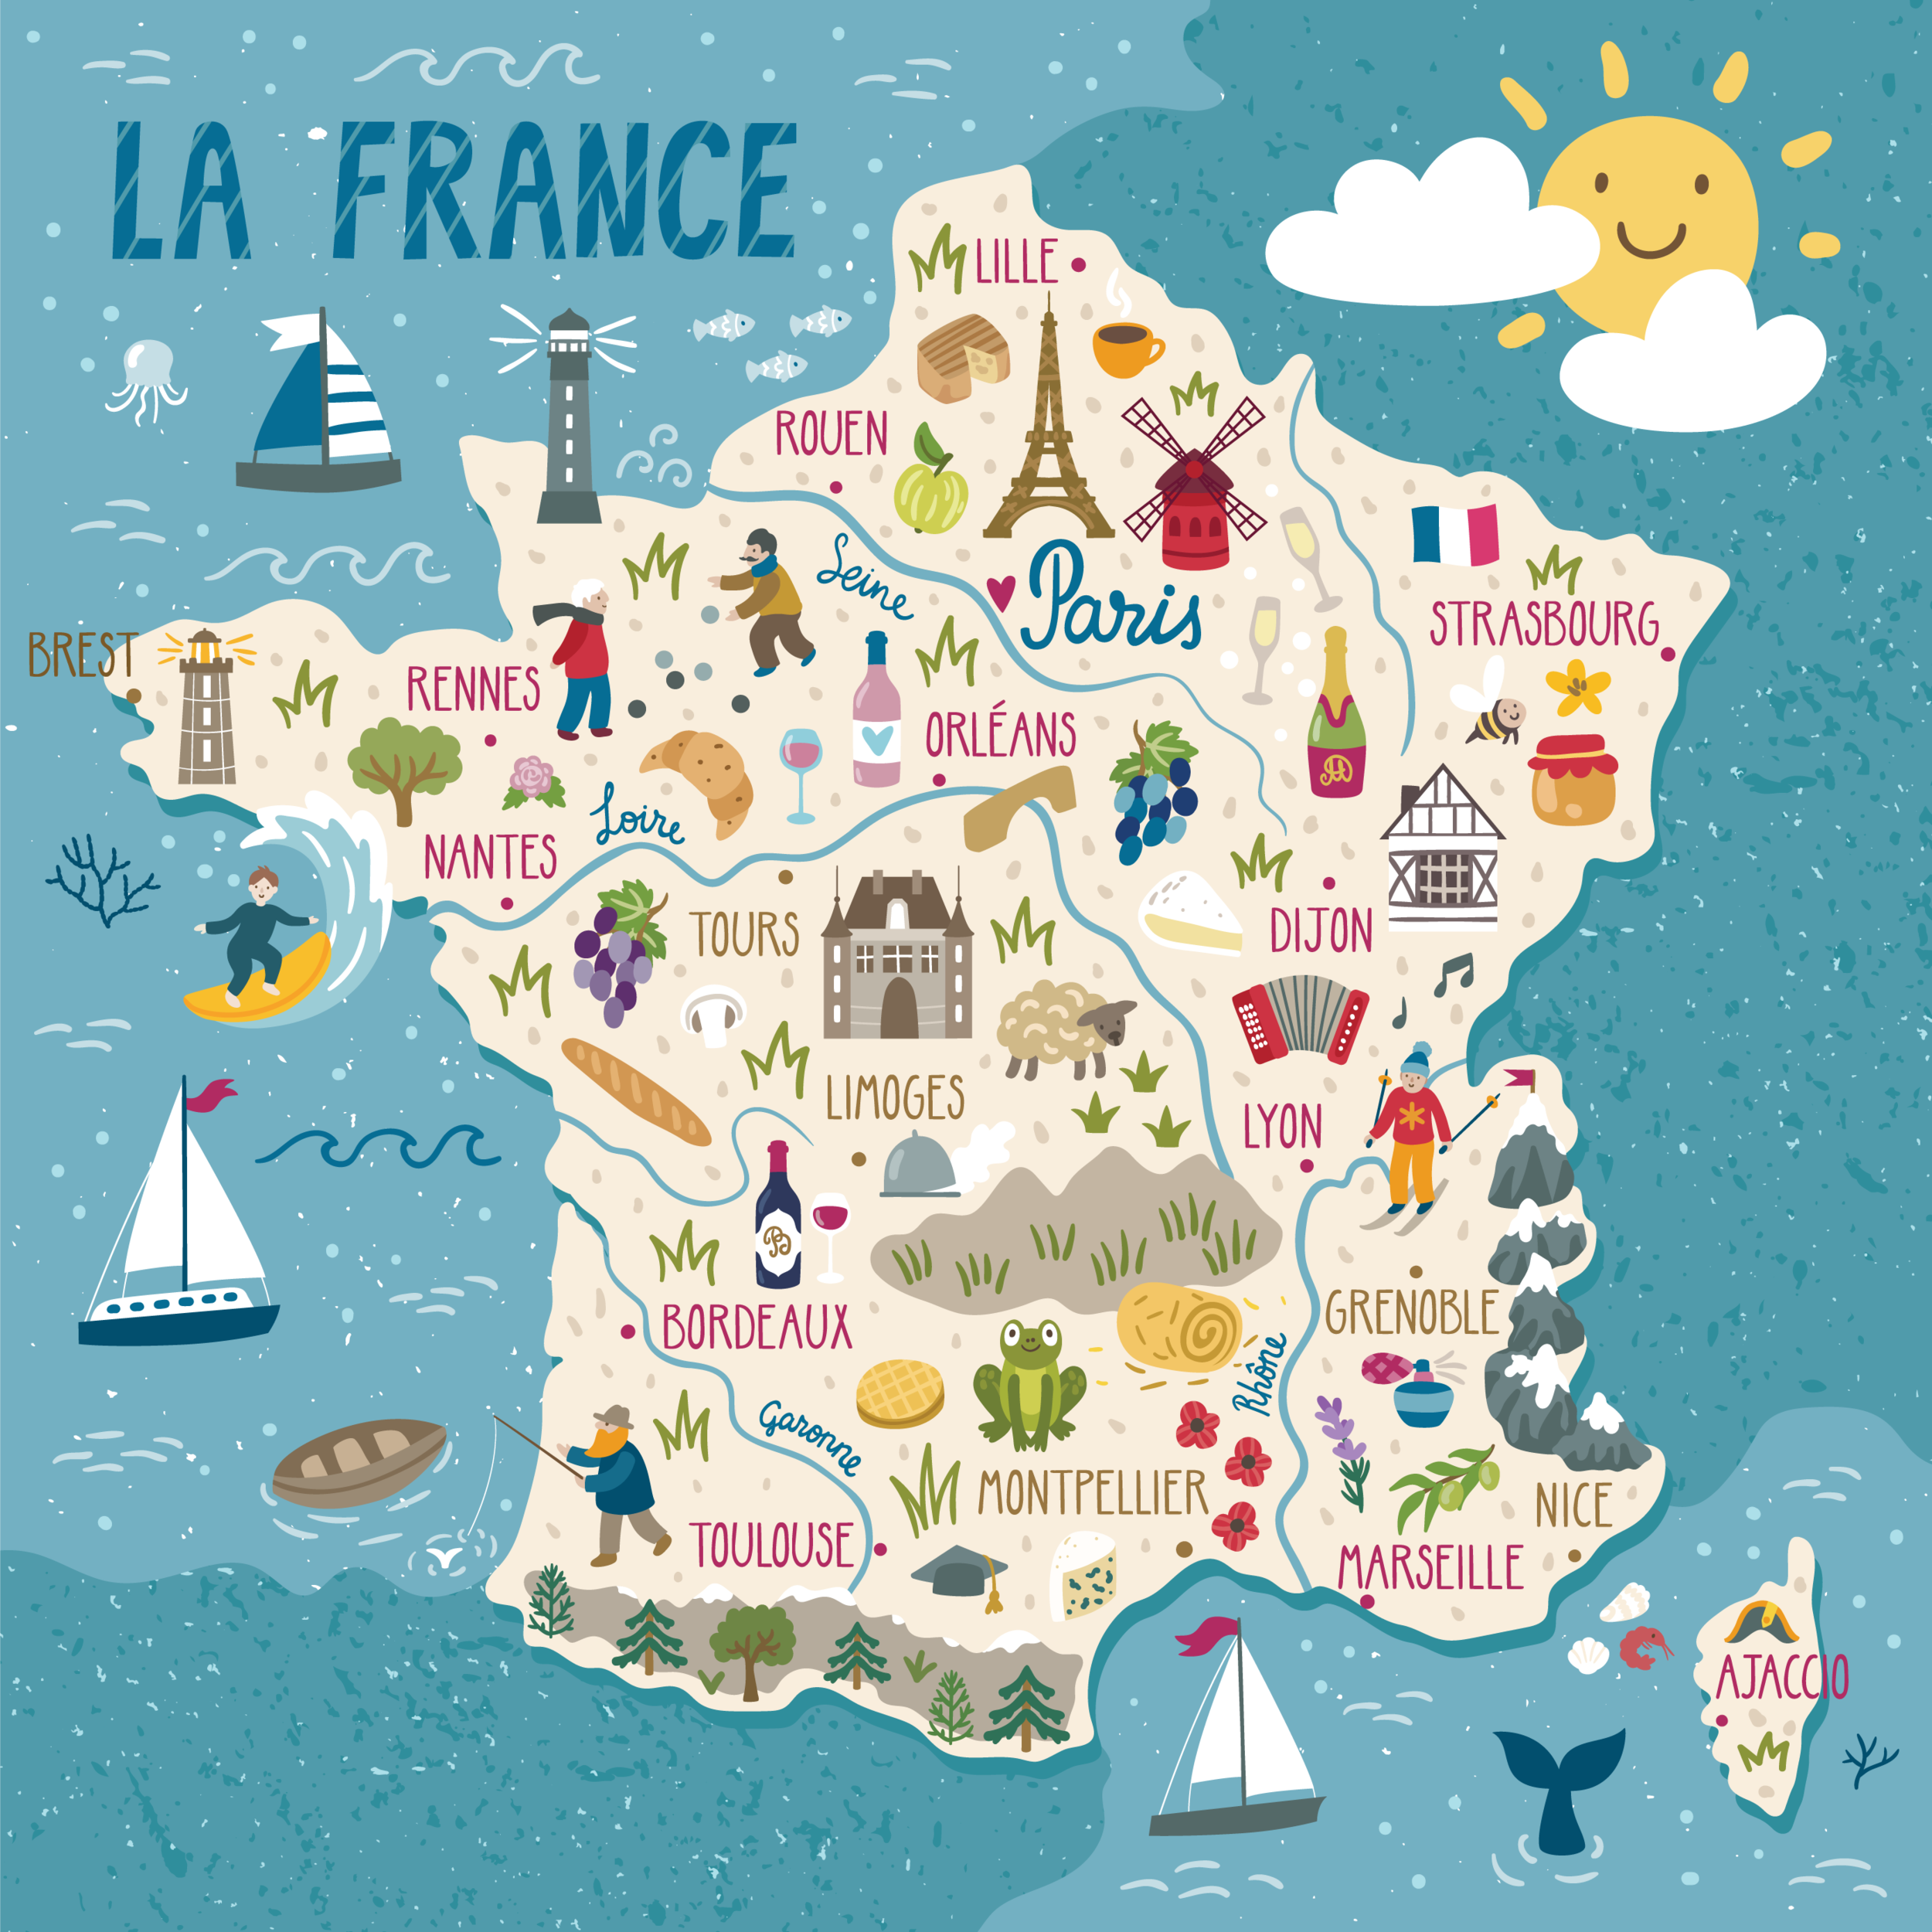 A route through ckbk's French cookbook collection